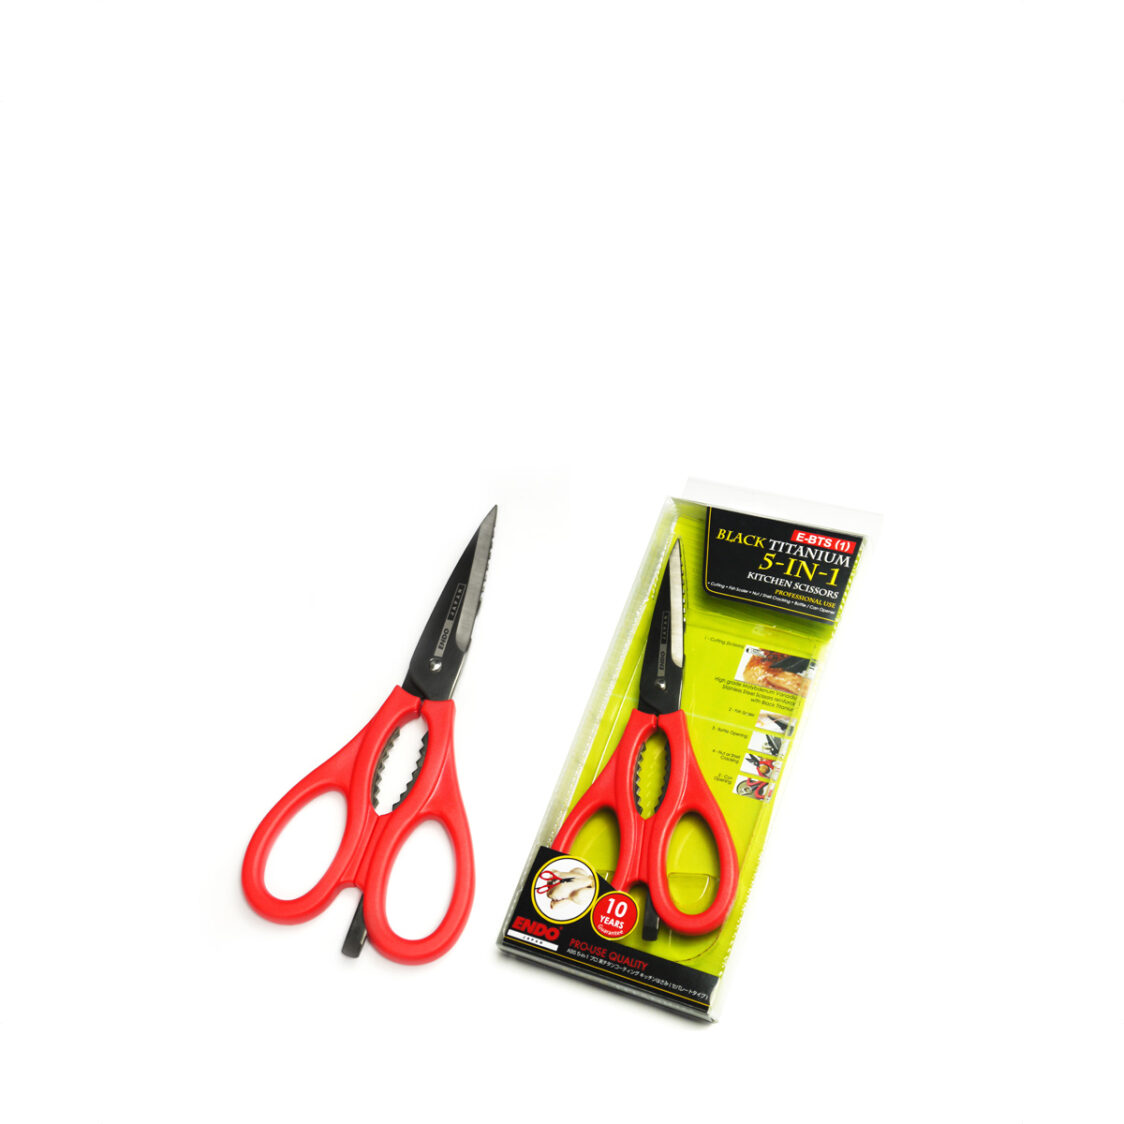 Endo Black Titanium 5-In-1 Professional Kitchen Scissors E-BTS1